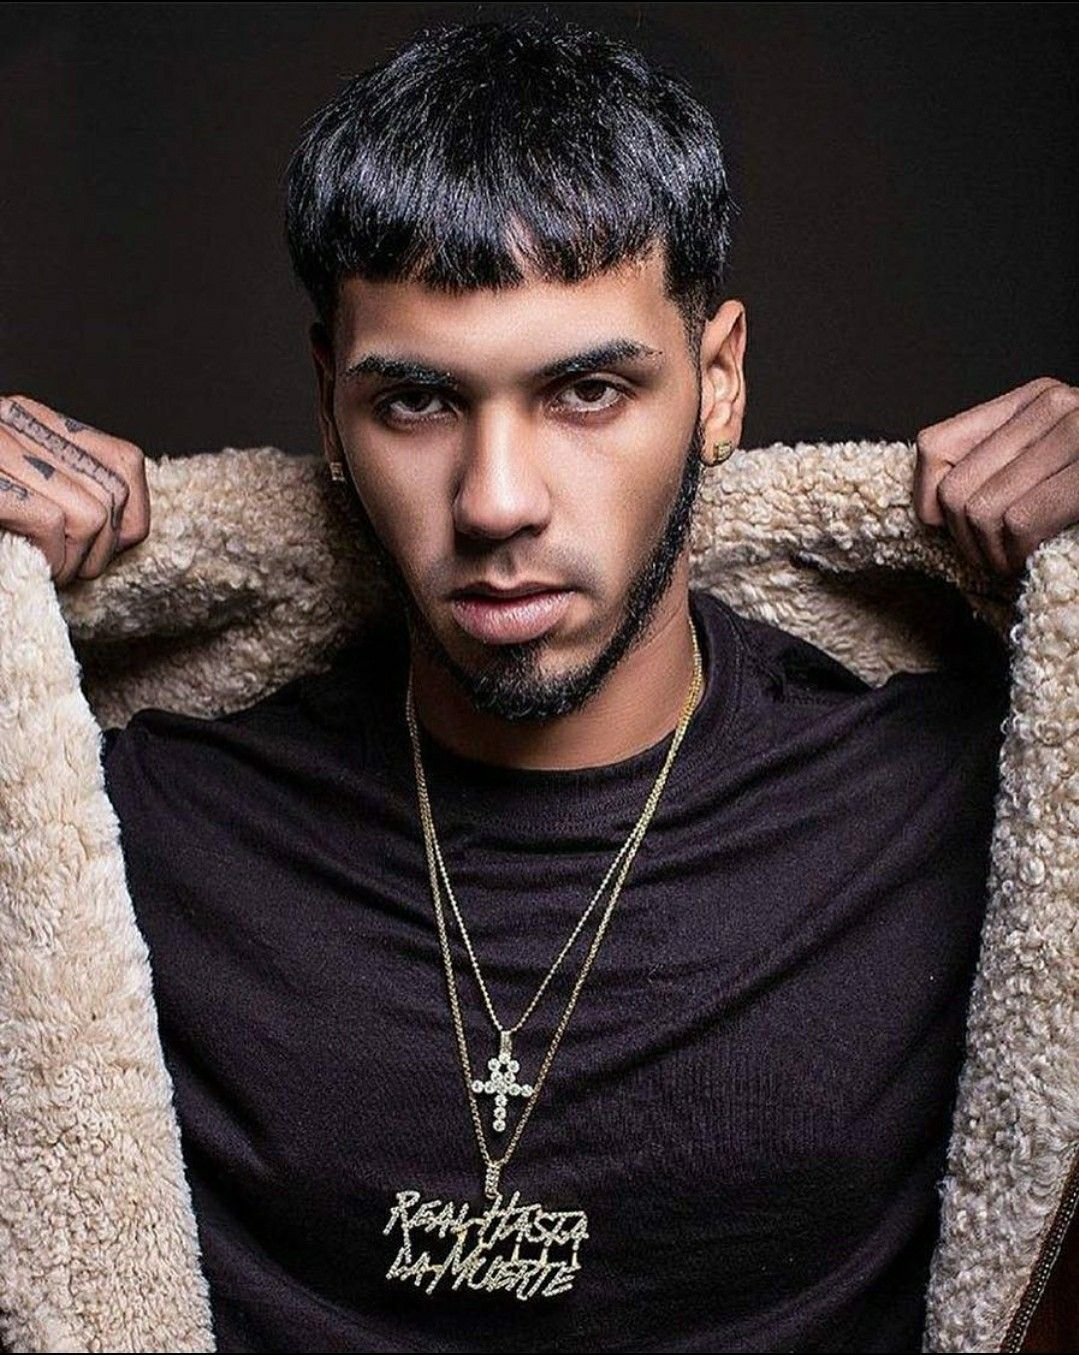 Pin By Teddyminely On Anuel Aa Latin Artists Crazy Girls Singer